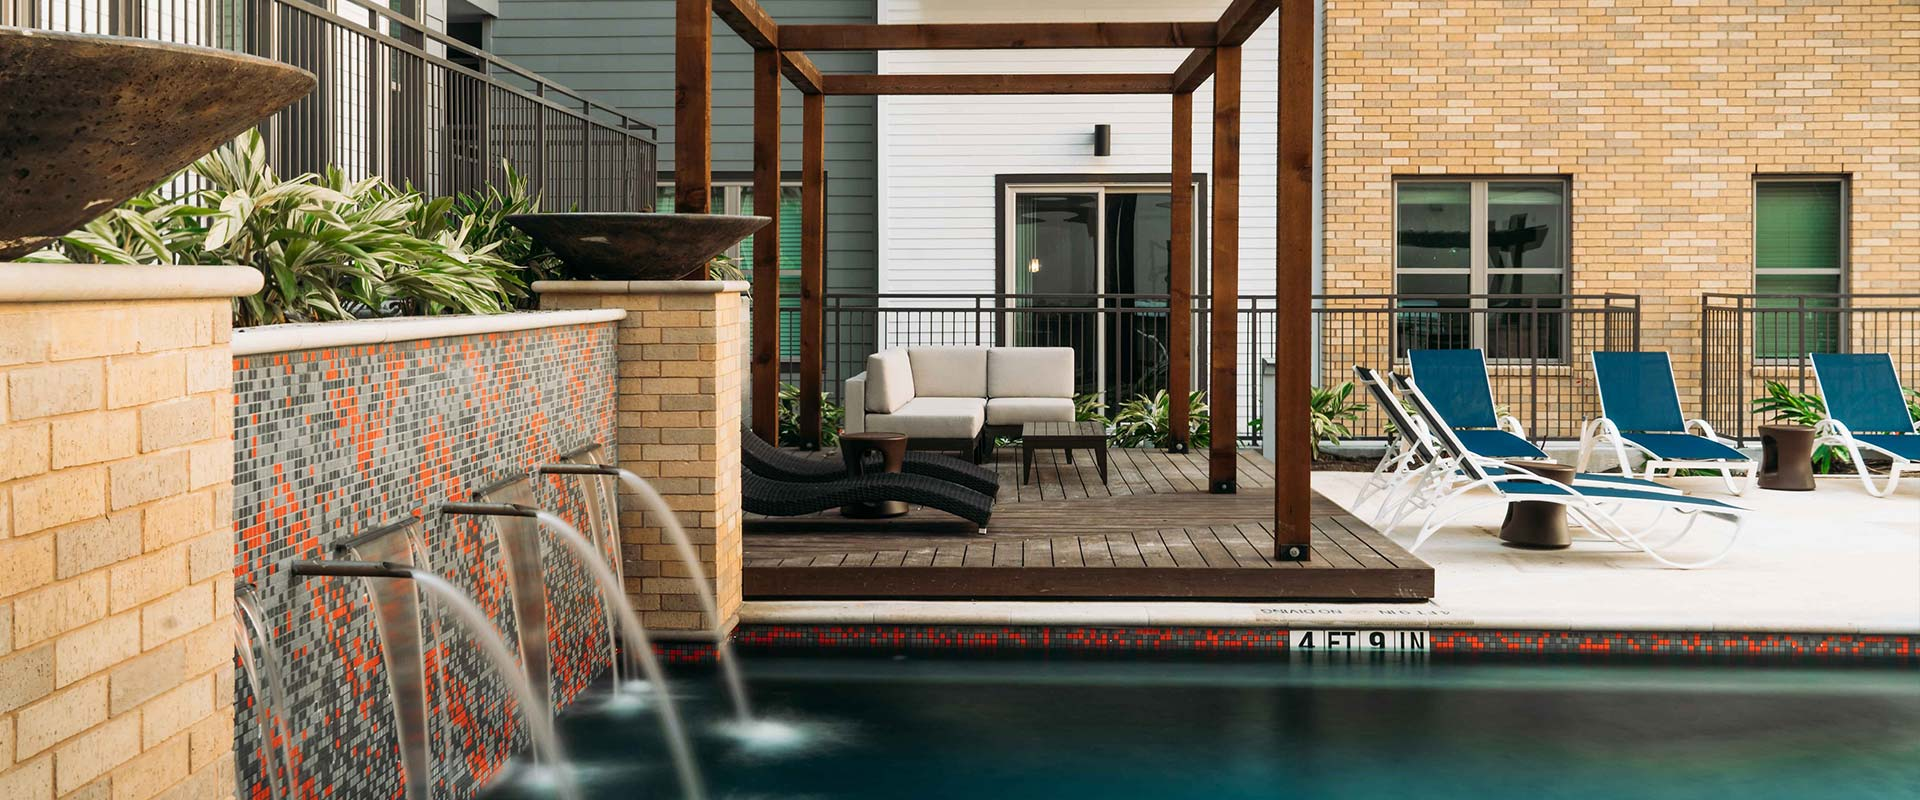 Outdoor Swimming Pool with Fountains at Rivera Apartments in San Antonio, Texas